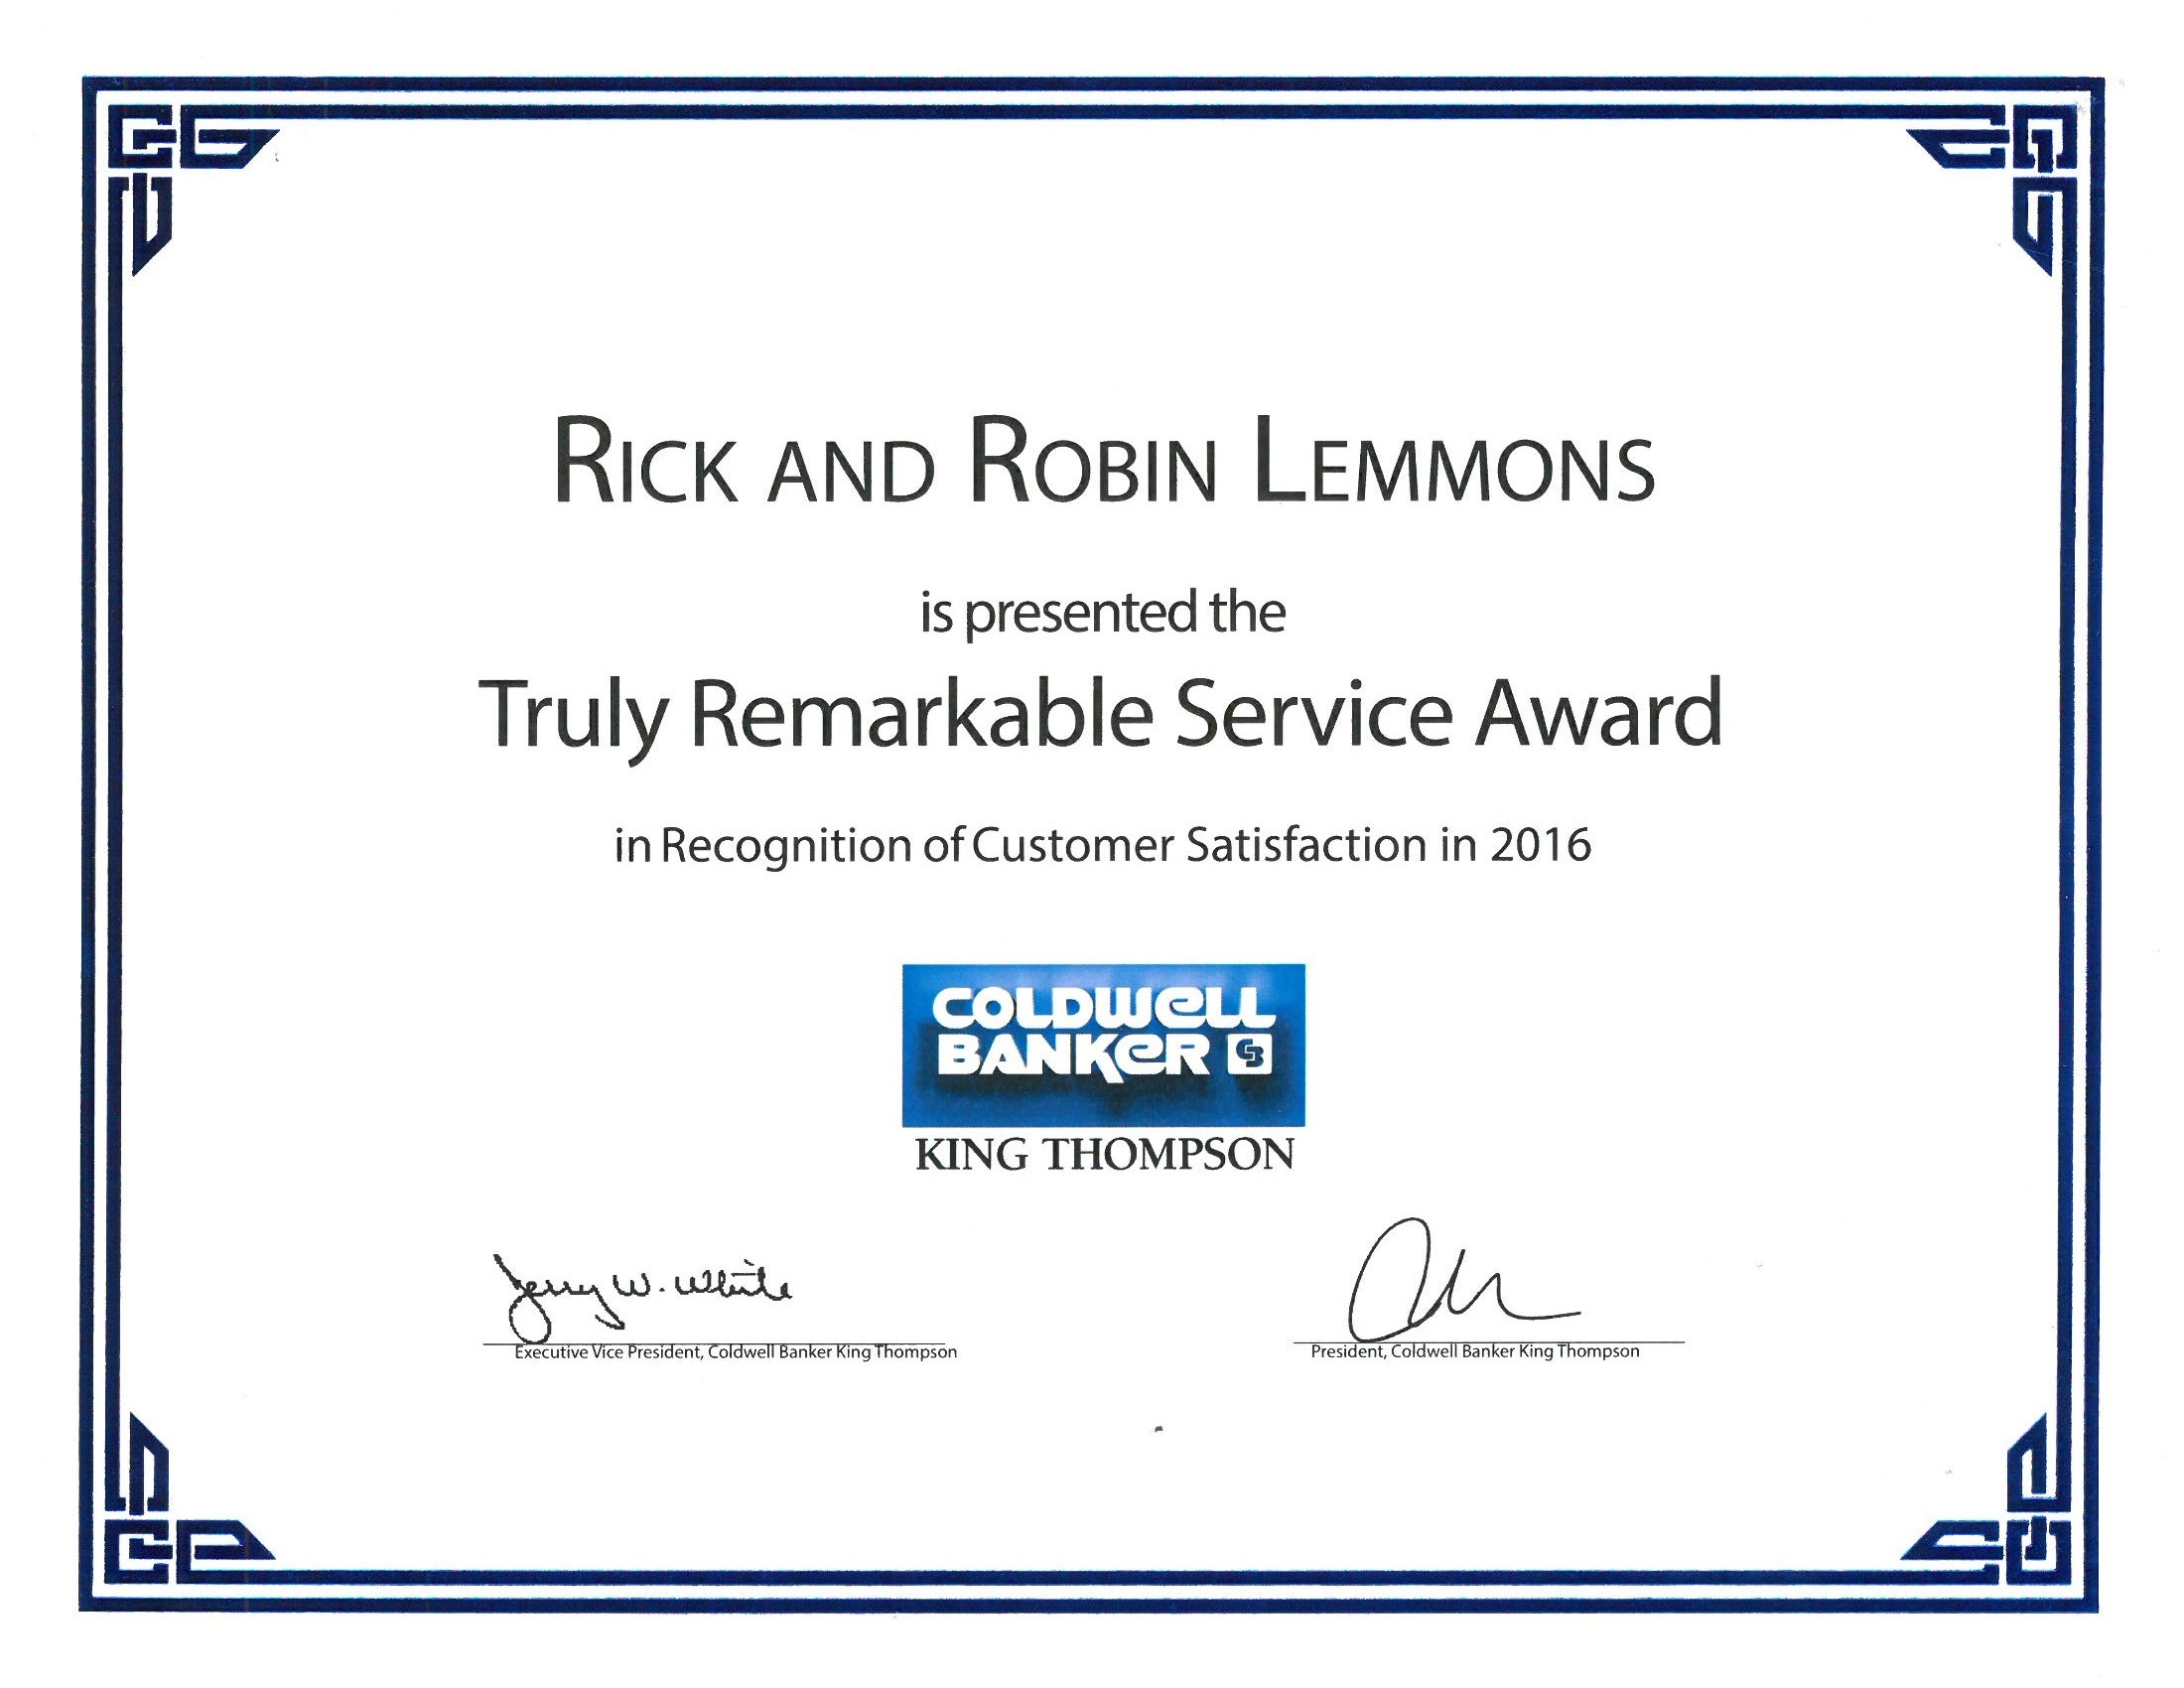 2016 Truly Remarkable service Award